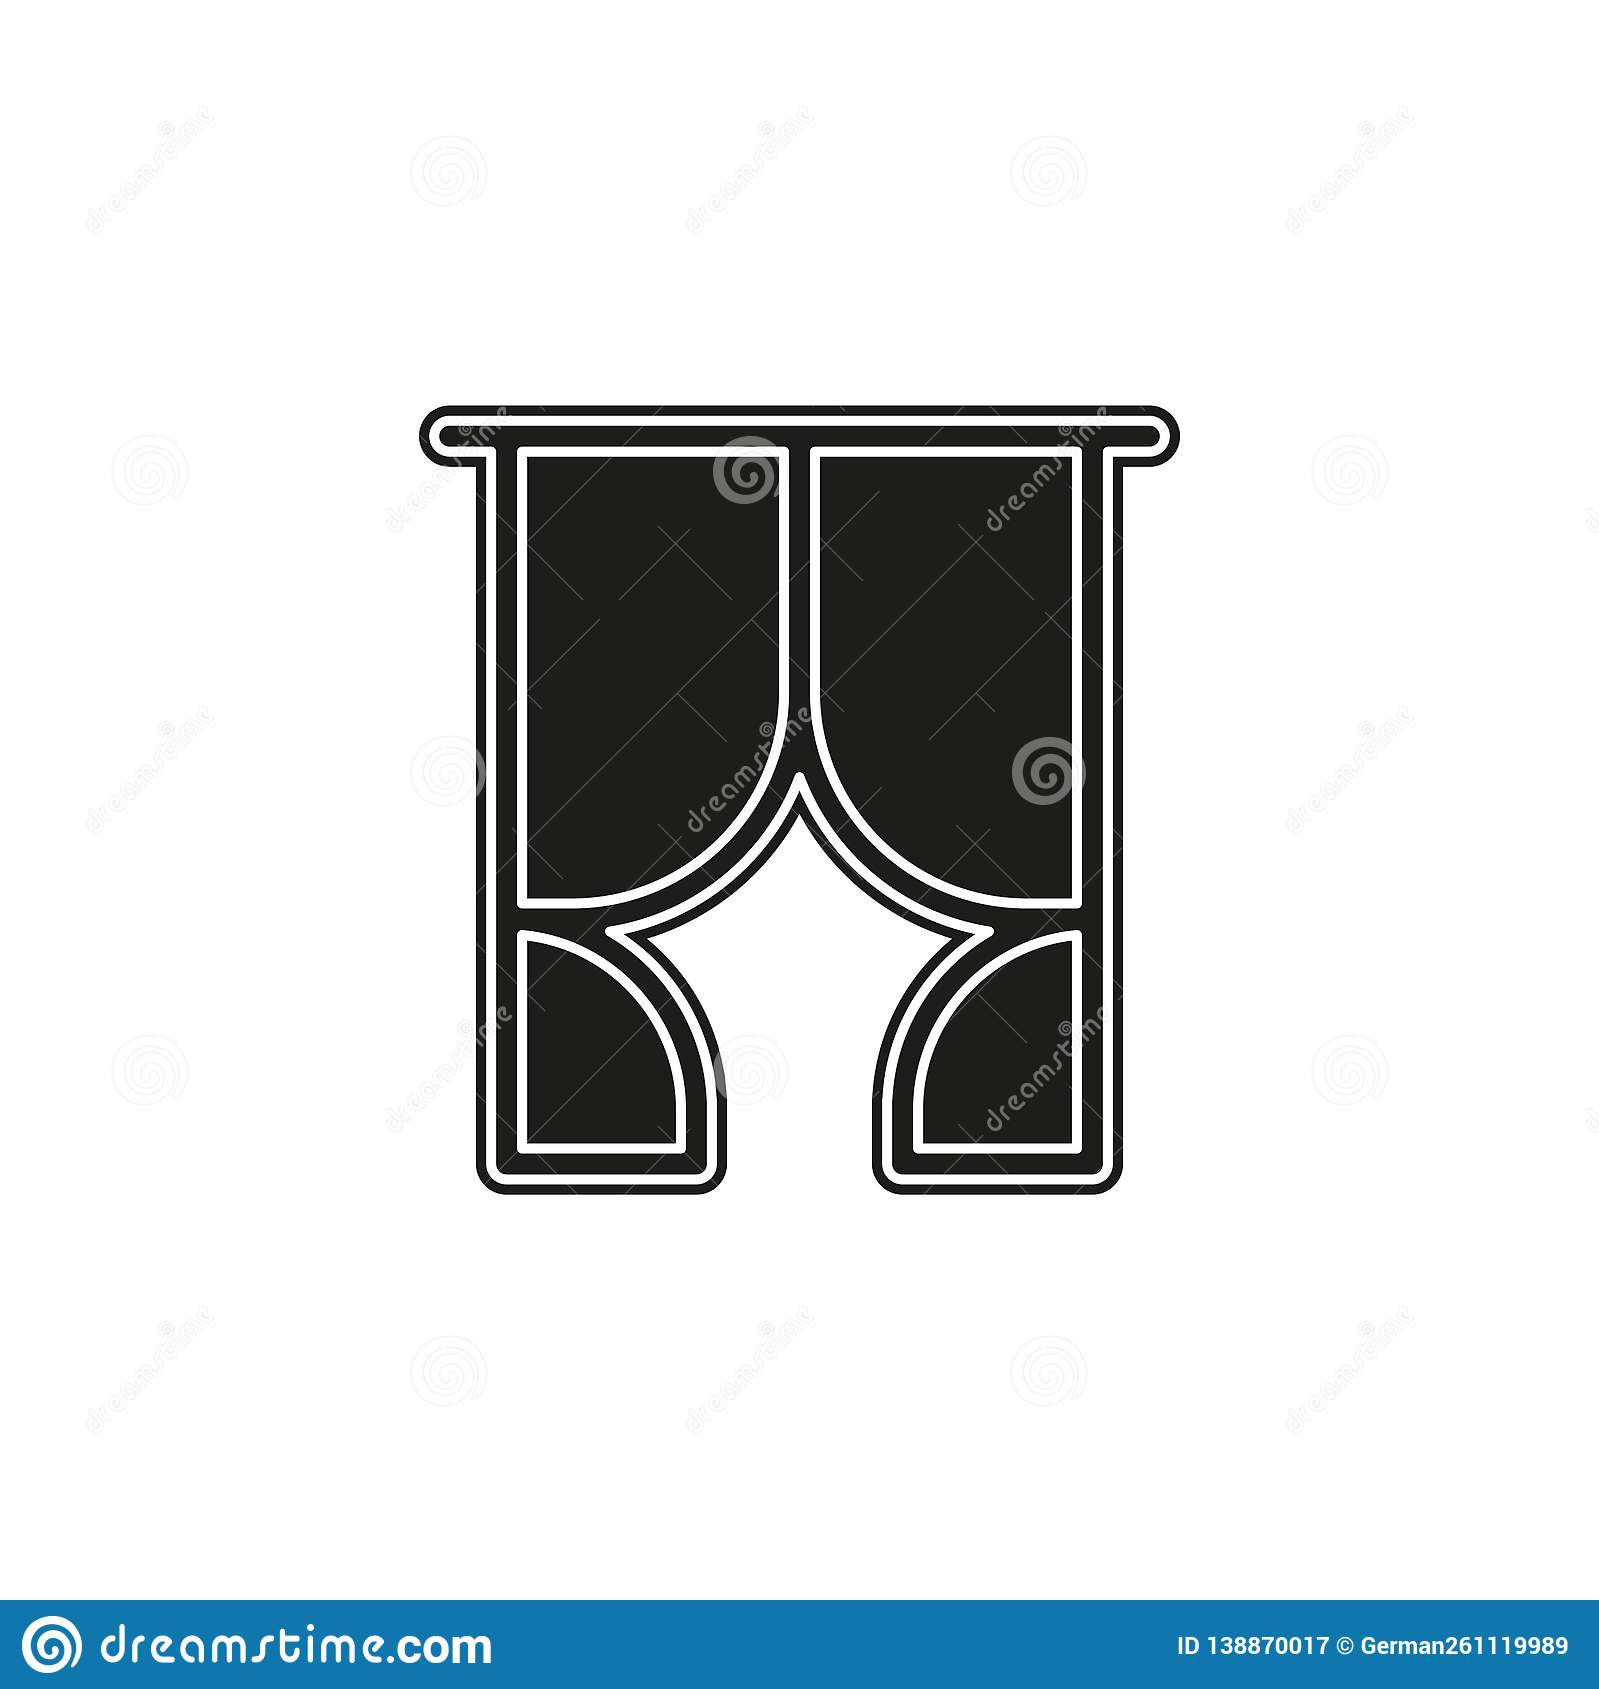 vector stage curtain illustration - theater image